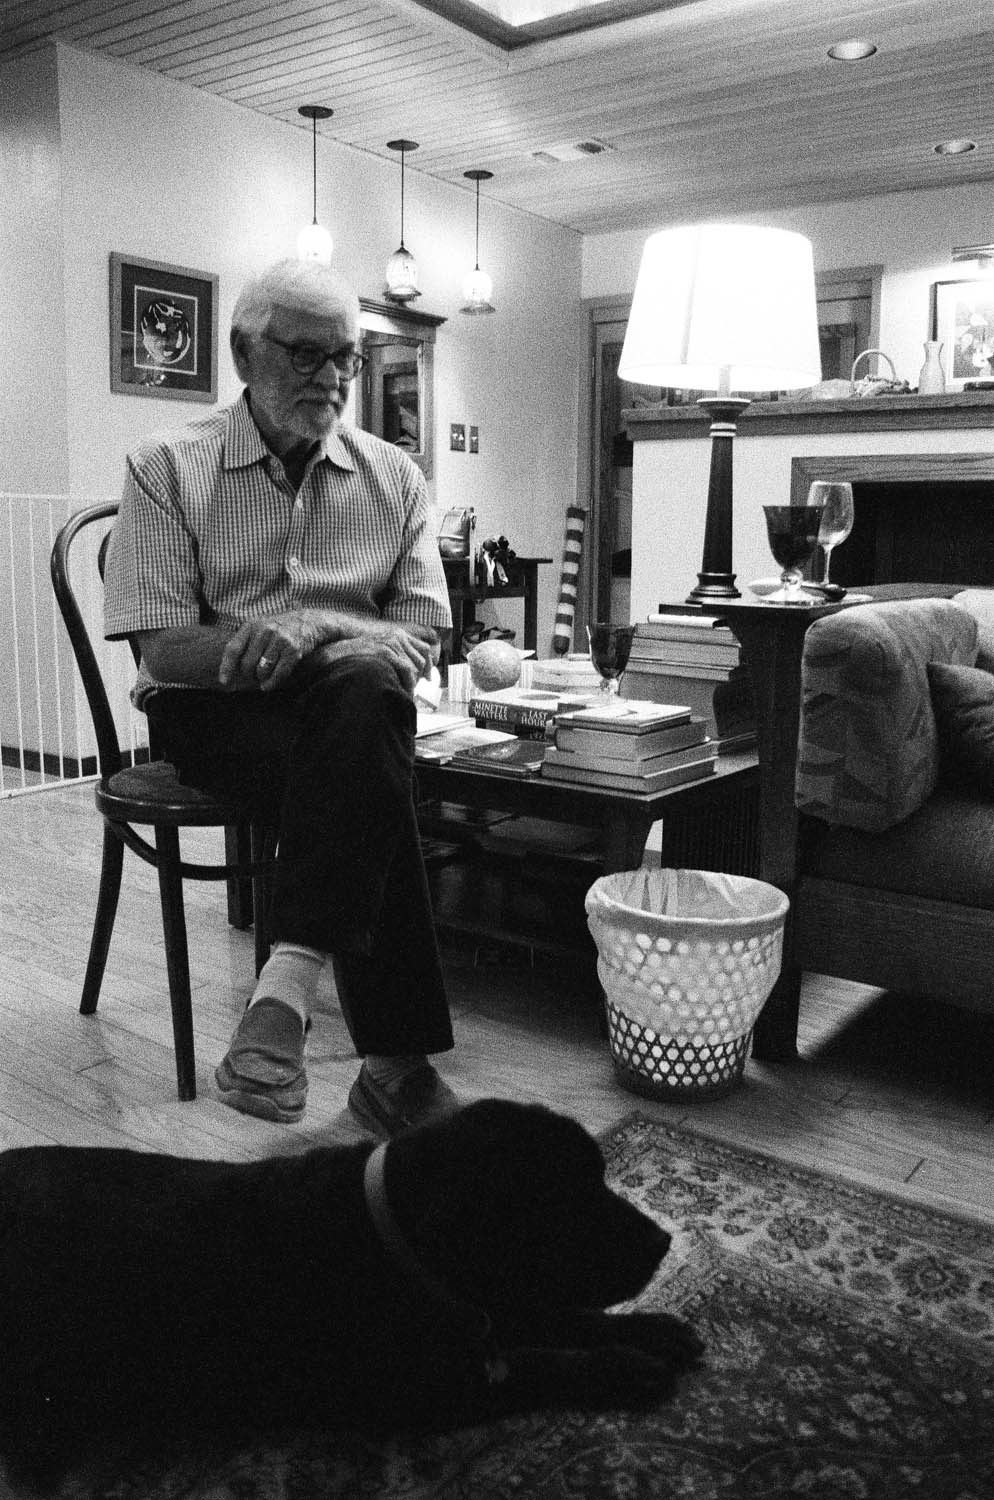 A shot of a relative and his dog. Shot at 3200, and developed at 3200 by the Darkroom.